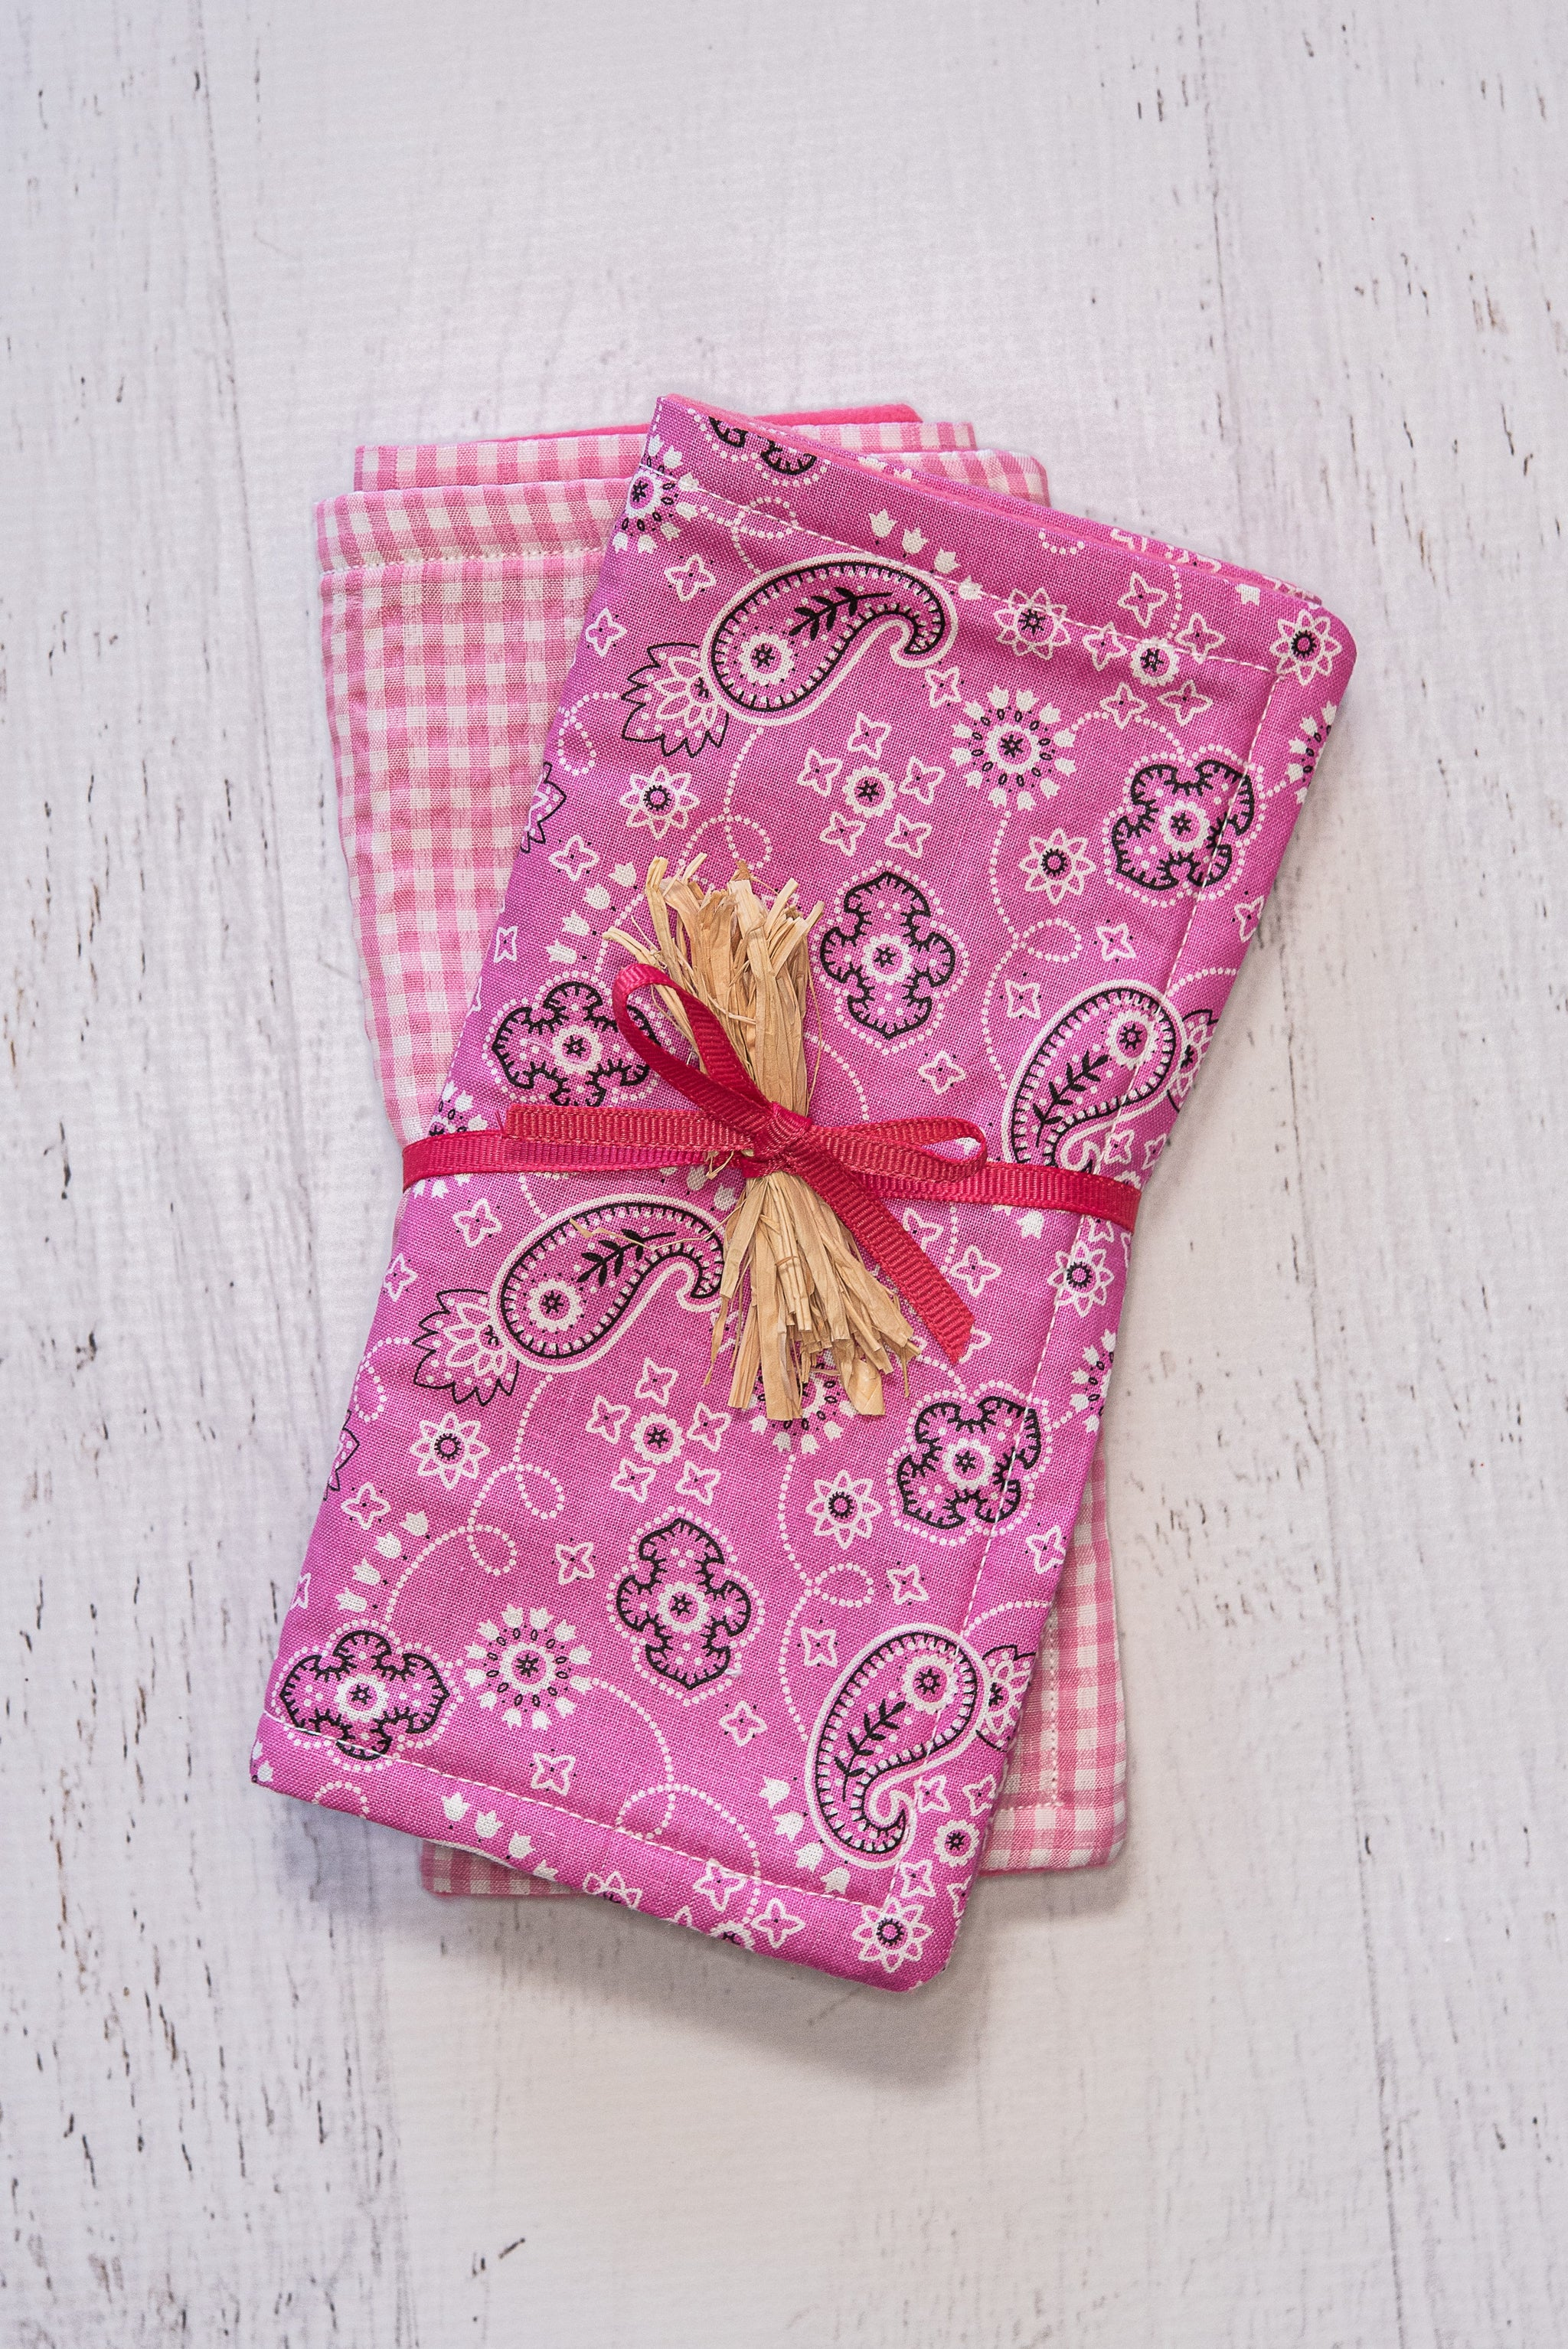 Pink Paisley and Gingham Burp Cloths